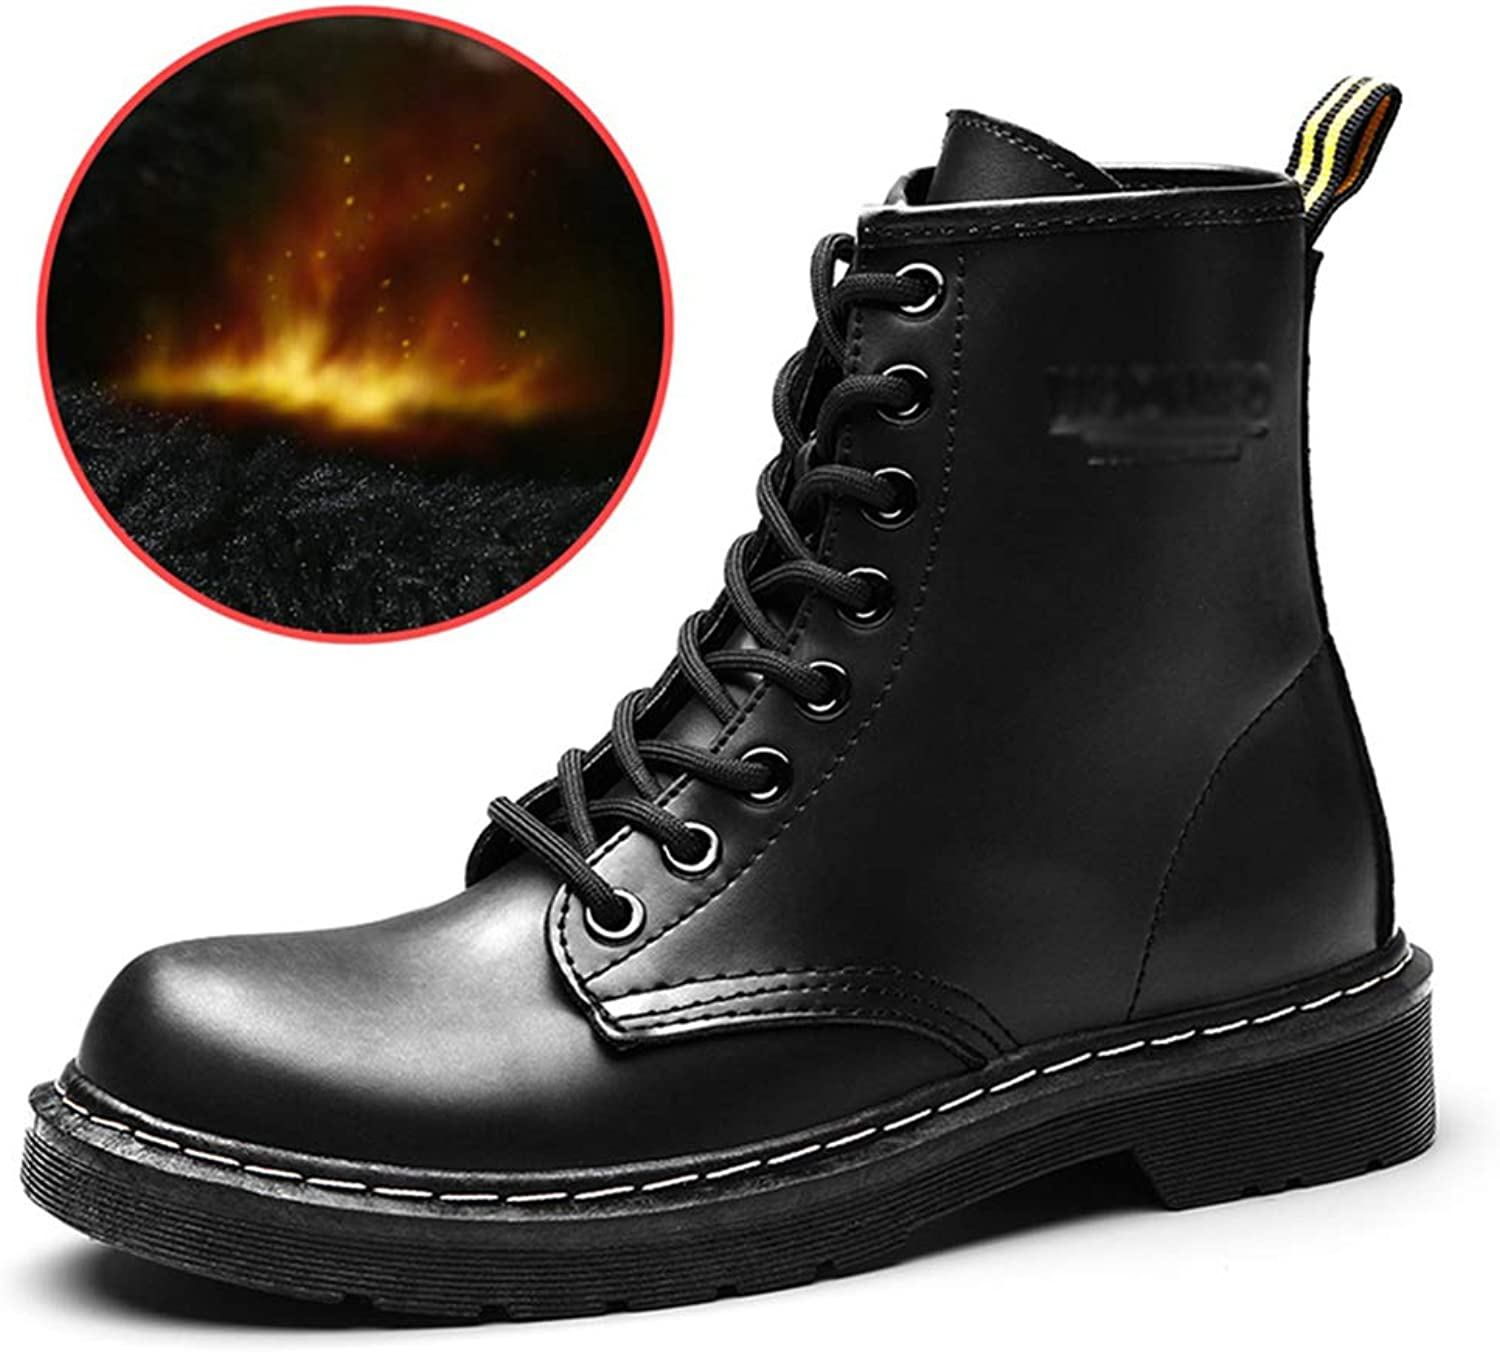 Velvet Warm Short Barrel Martin Boots, Simple Leather Fashion Trend Female Boots Leather shoes,35